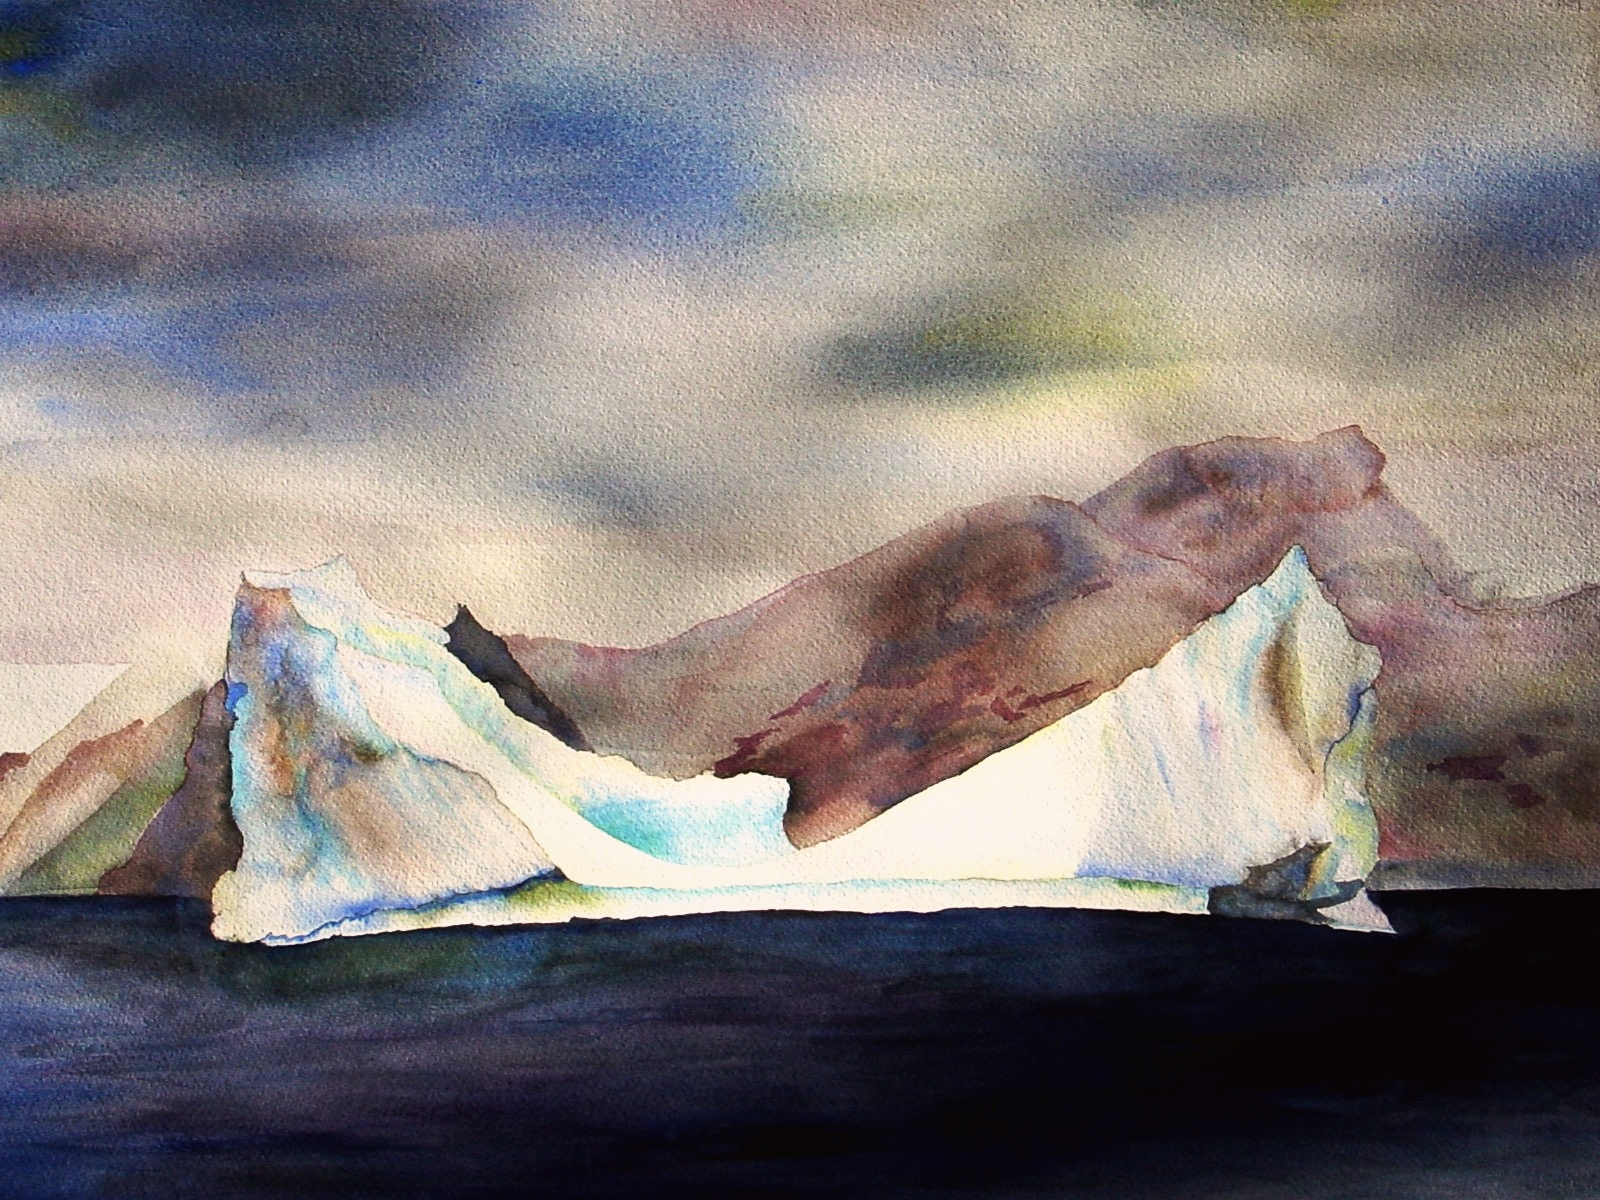 "Iceberg From Our Zodiac, Antarctica No. 2 - 24 x 36"" watercolor by Lisa Goren, 2005."